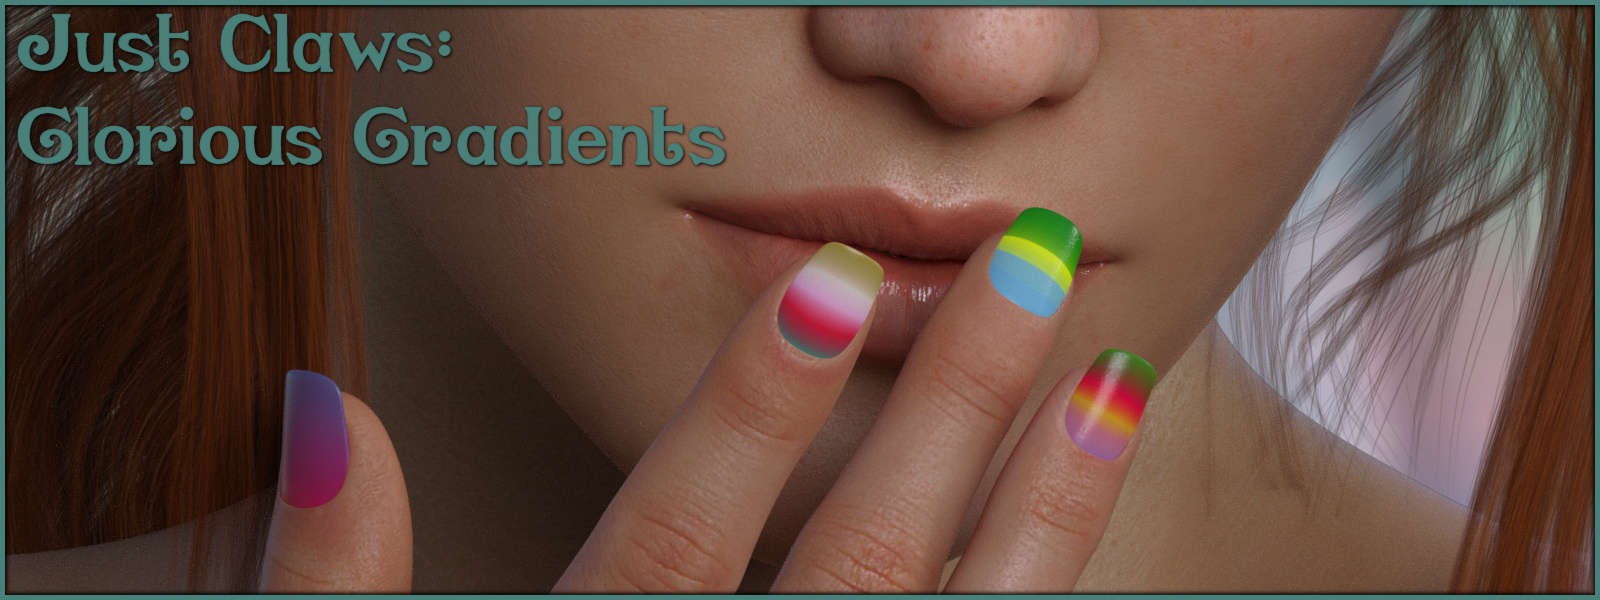 Just Claws 02: Glorious Gradients L.I.E and Merchant Resource for G8F